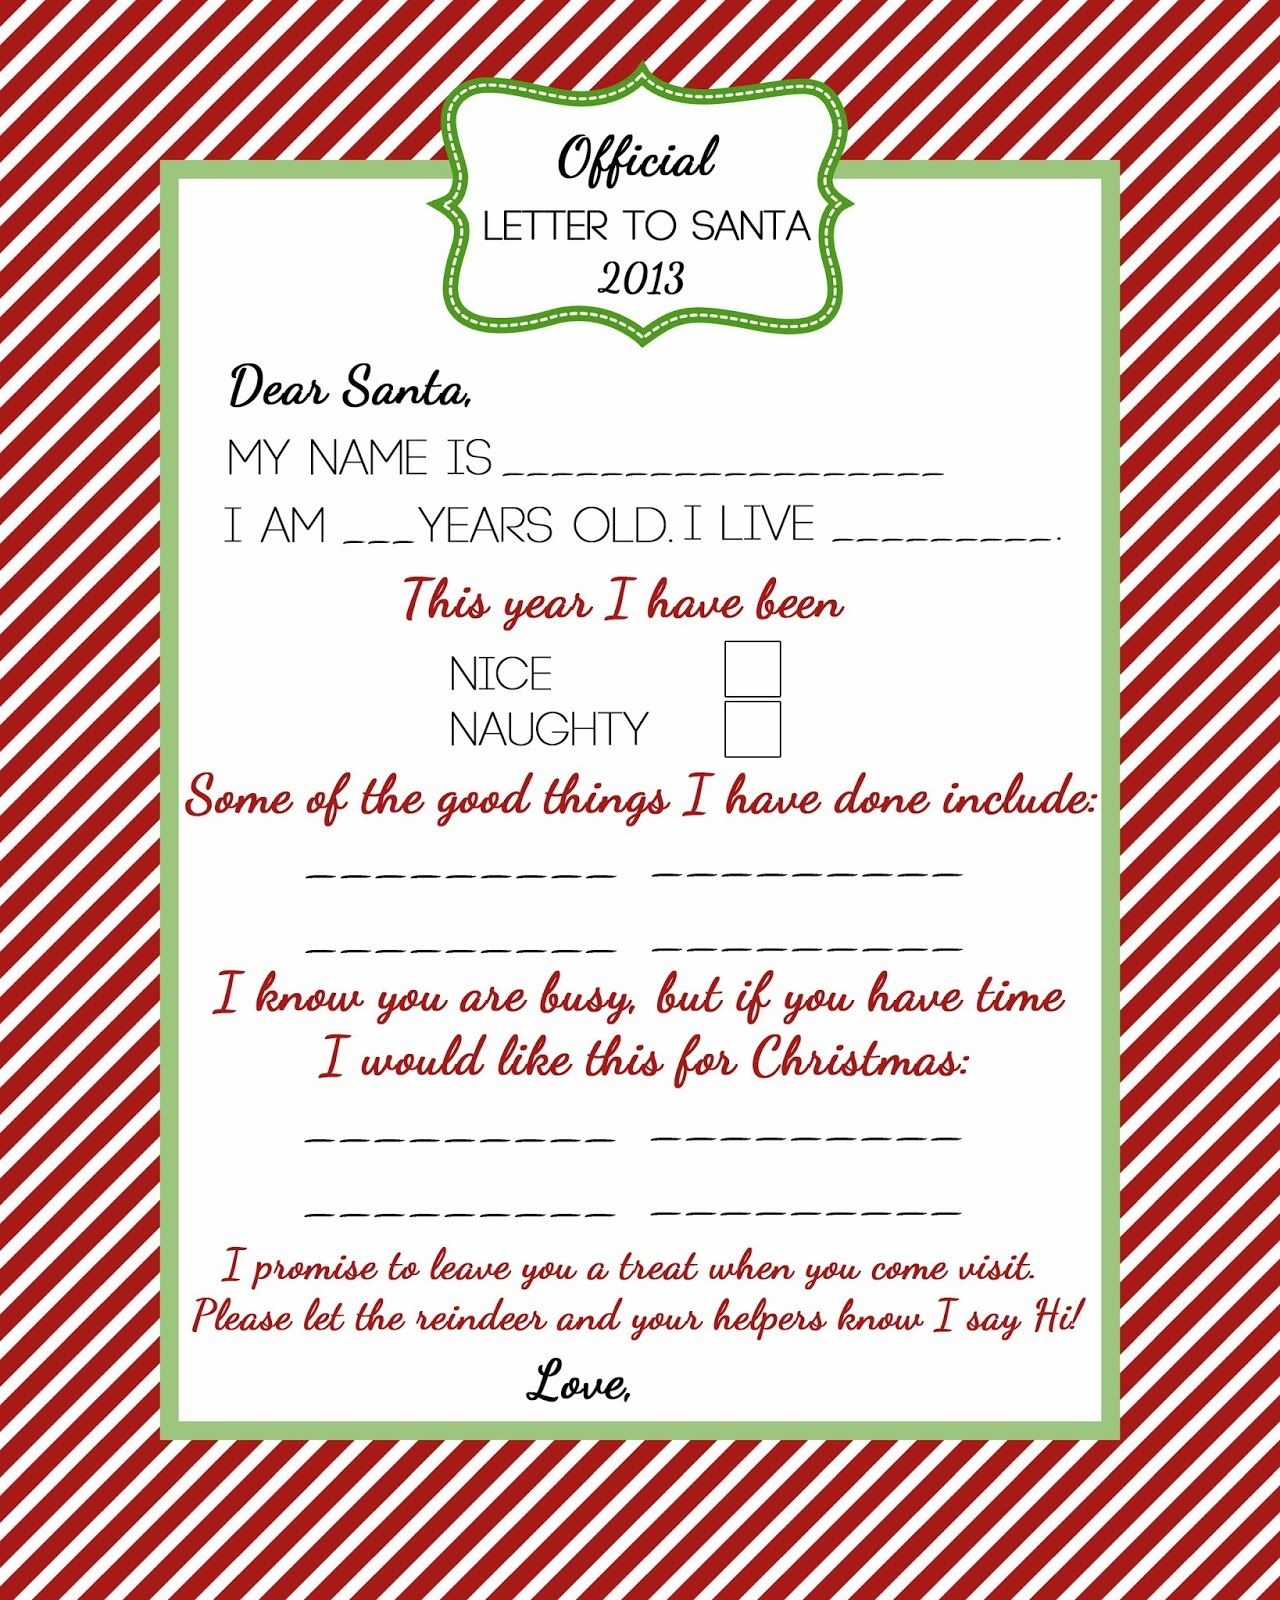 Official letter to santa for the hollydays pinterest santa christmas gifts official letter to santa spiritdancerdesigns Gallery